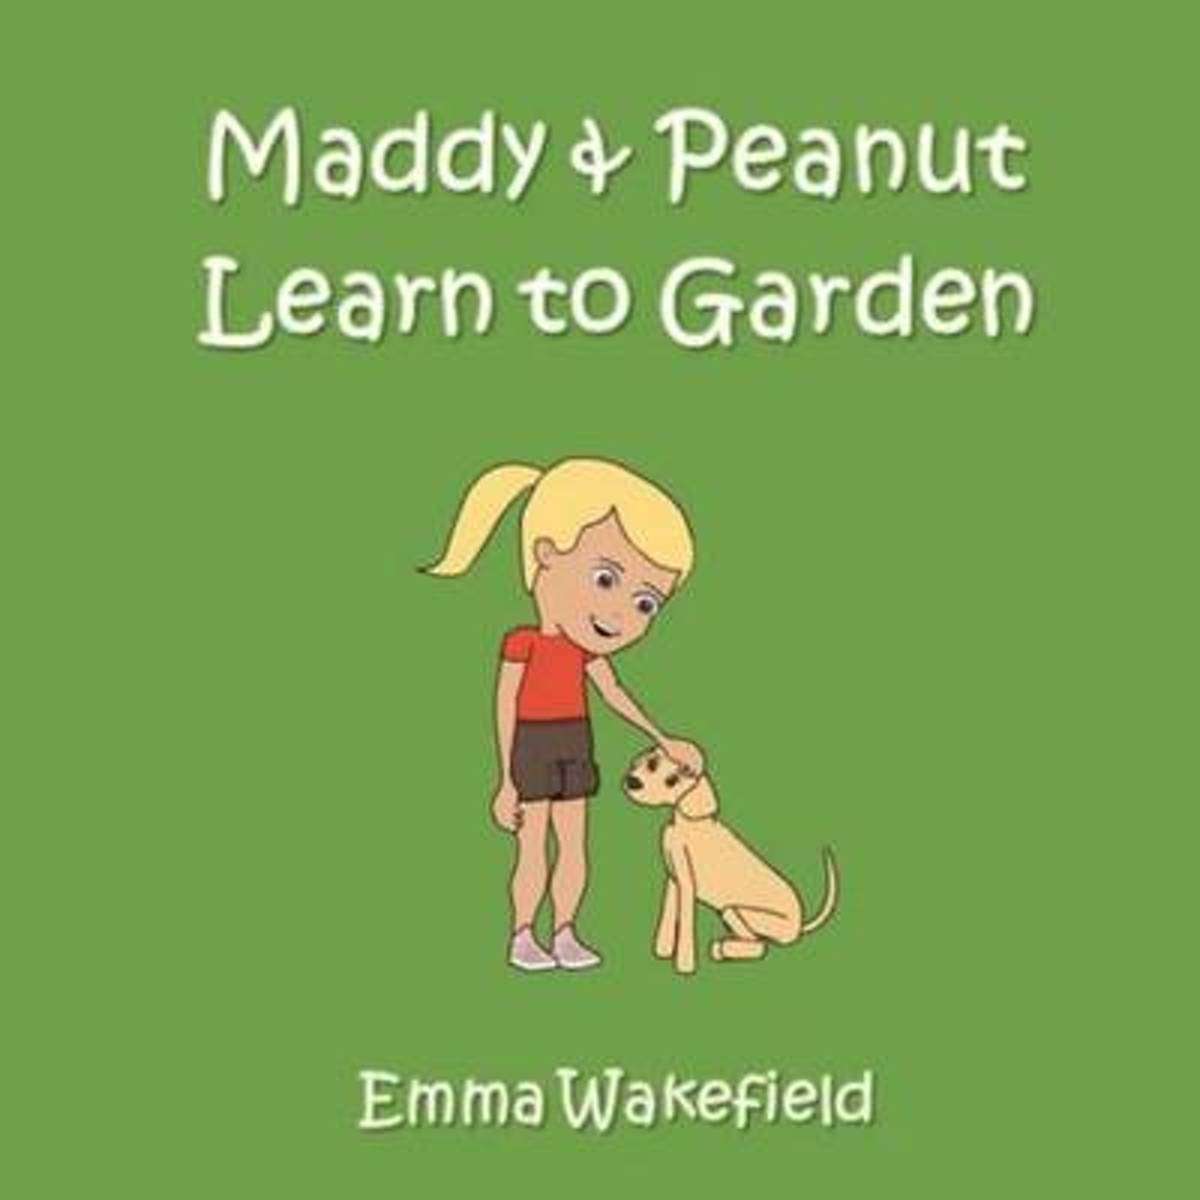 Maddy & Peanut Learn to Garden